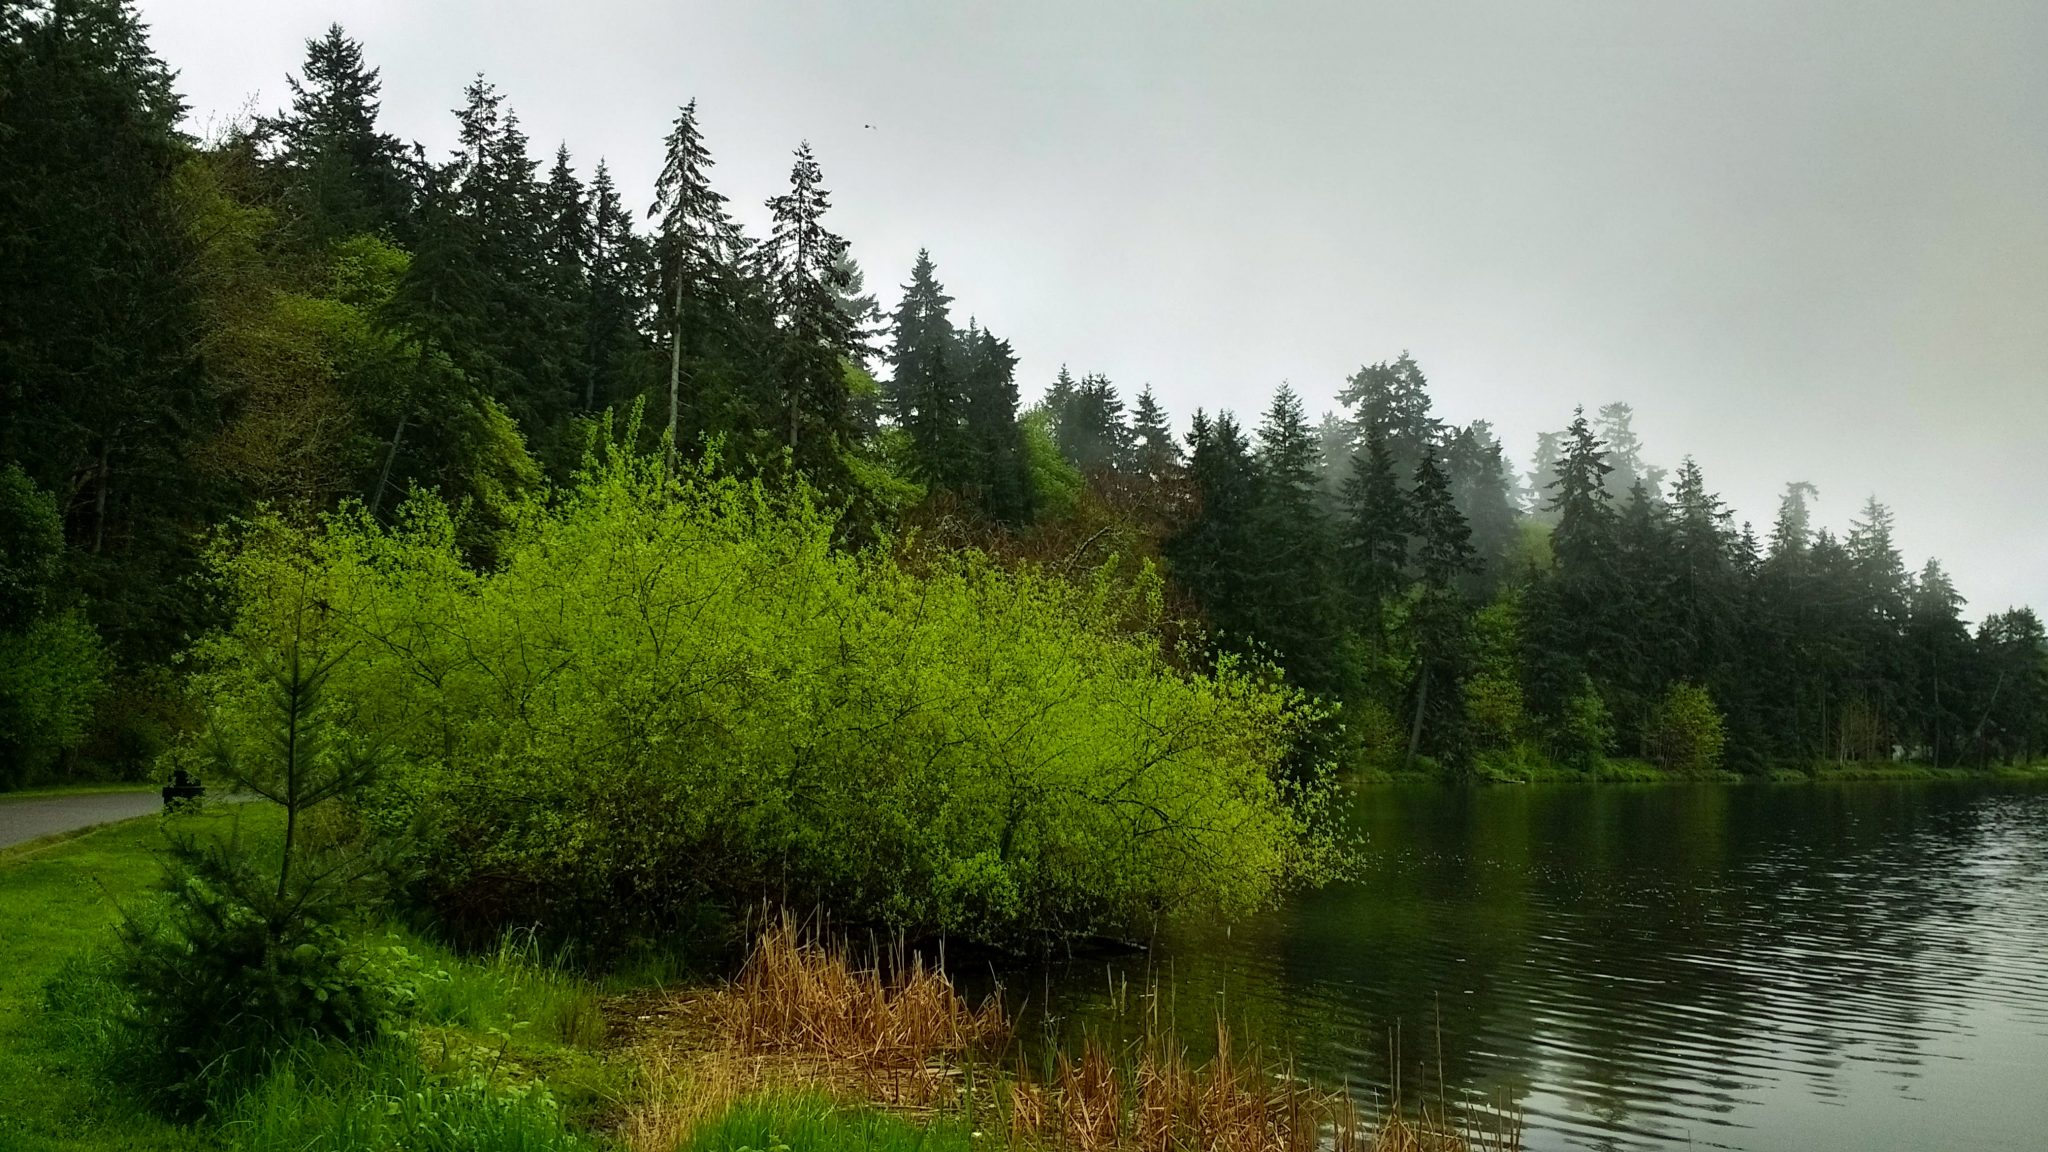 Walking and hiking are excellent outdoor activities in Seattle, including Seward Park. There are evergreen trees and green bushes along a path on a gray foggy day next to a lake